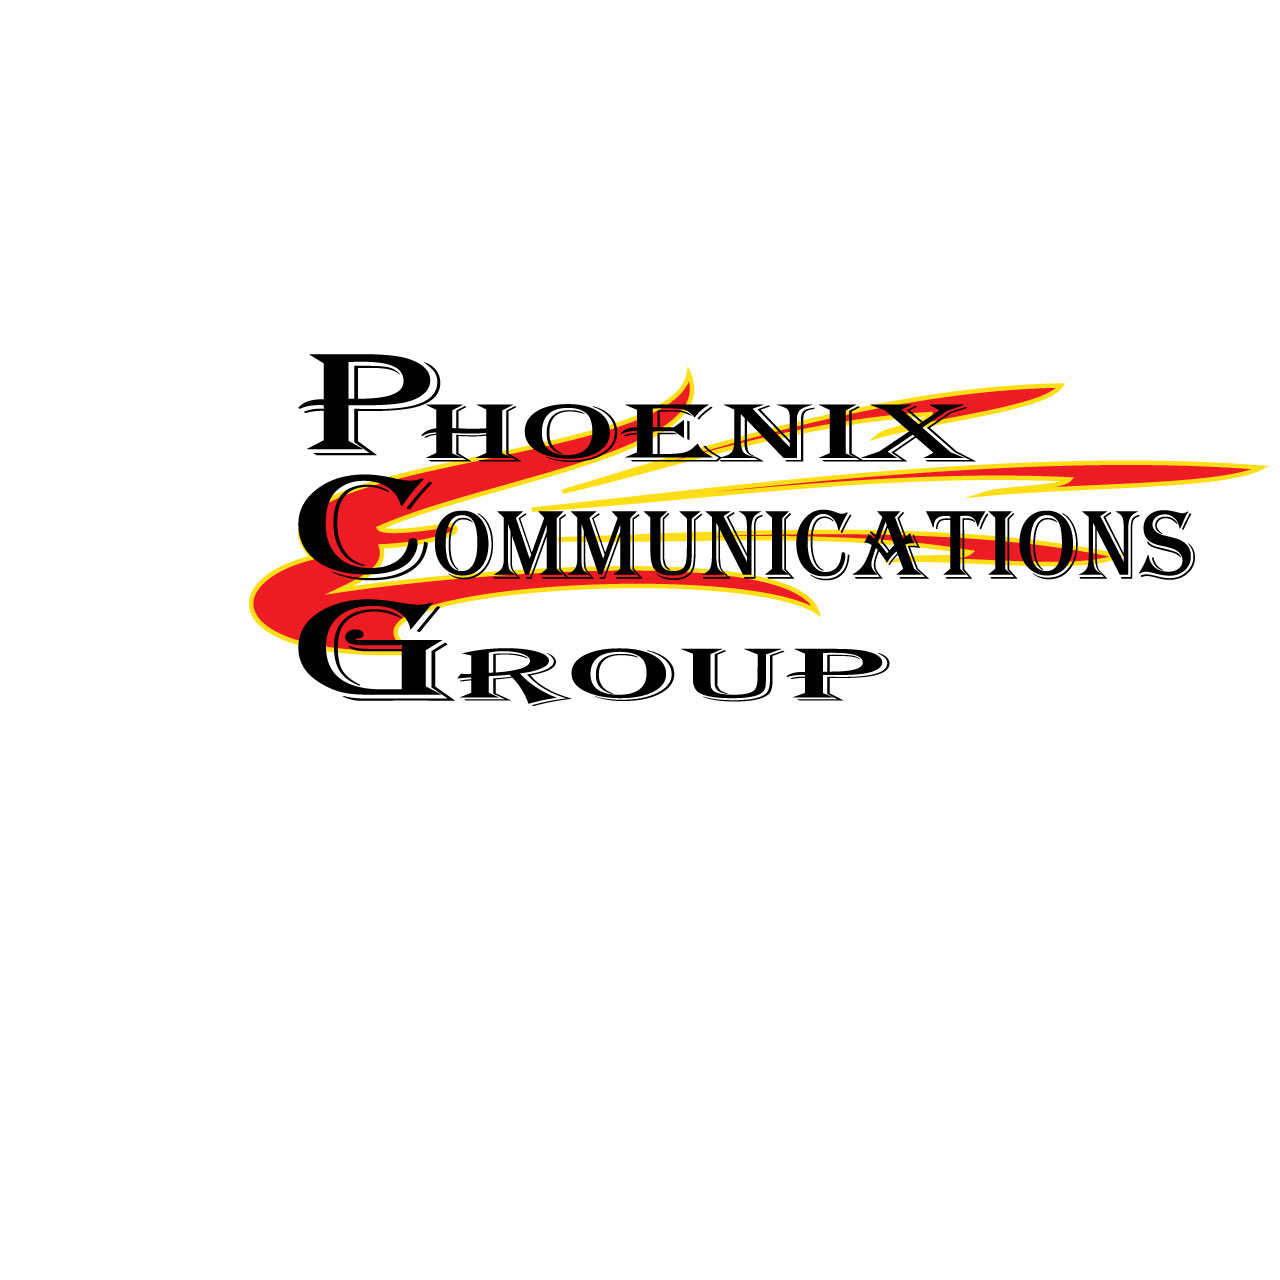 Logo Design by Ethan Waller - Entry No. 15 in the Logo Design Contest Phoenix Communications Group.